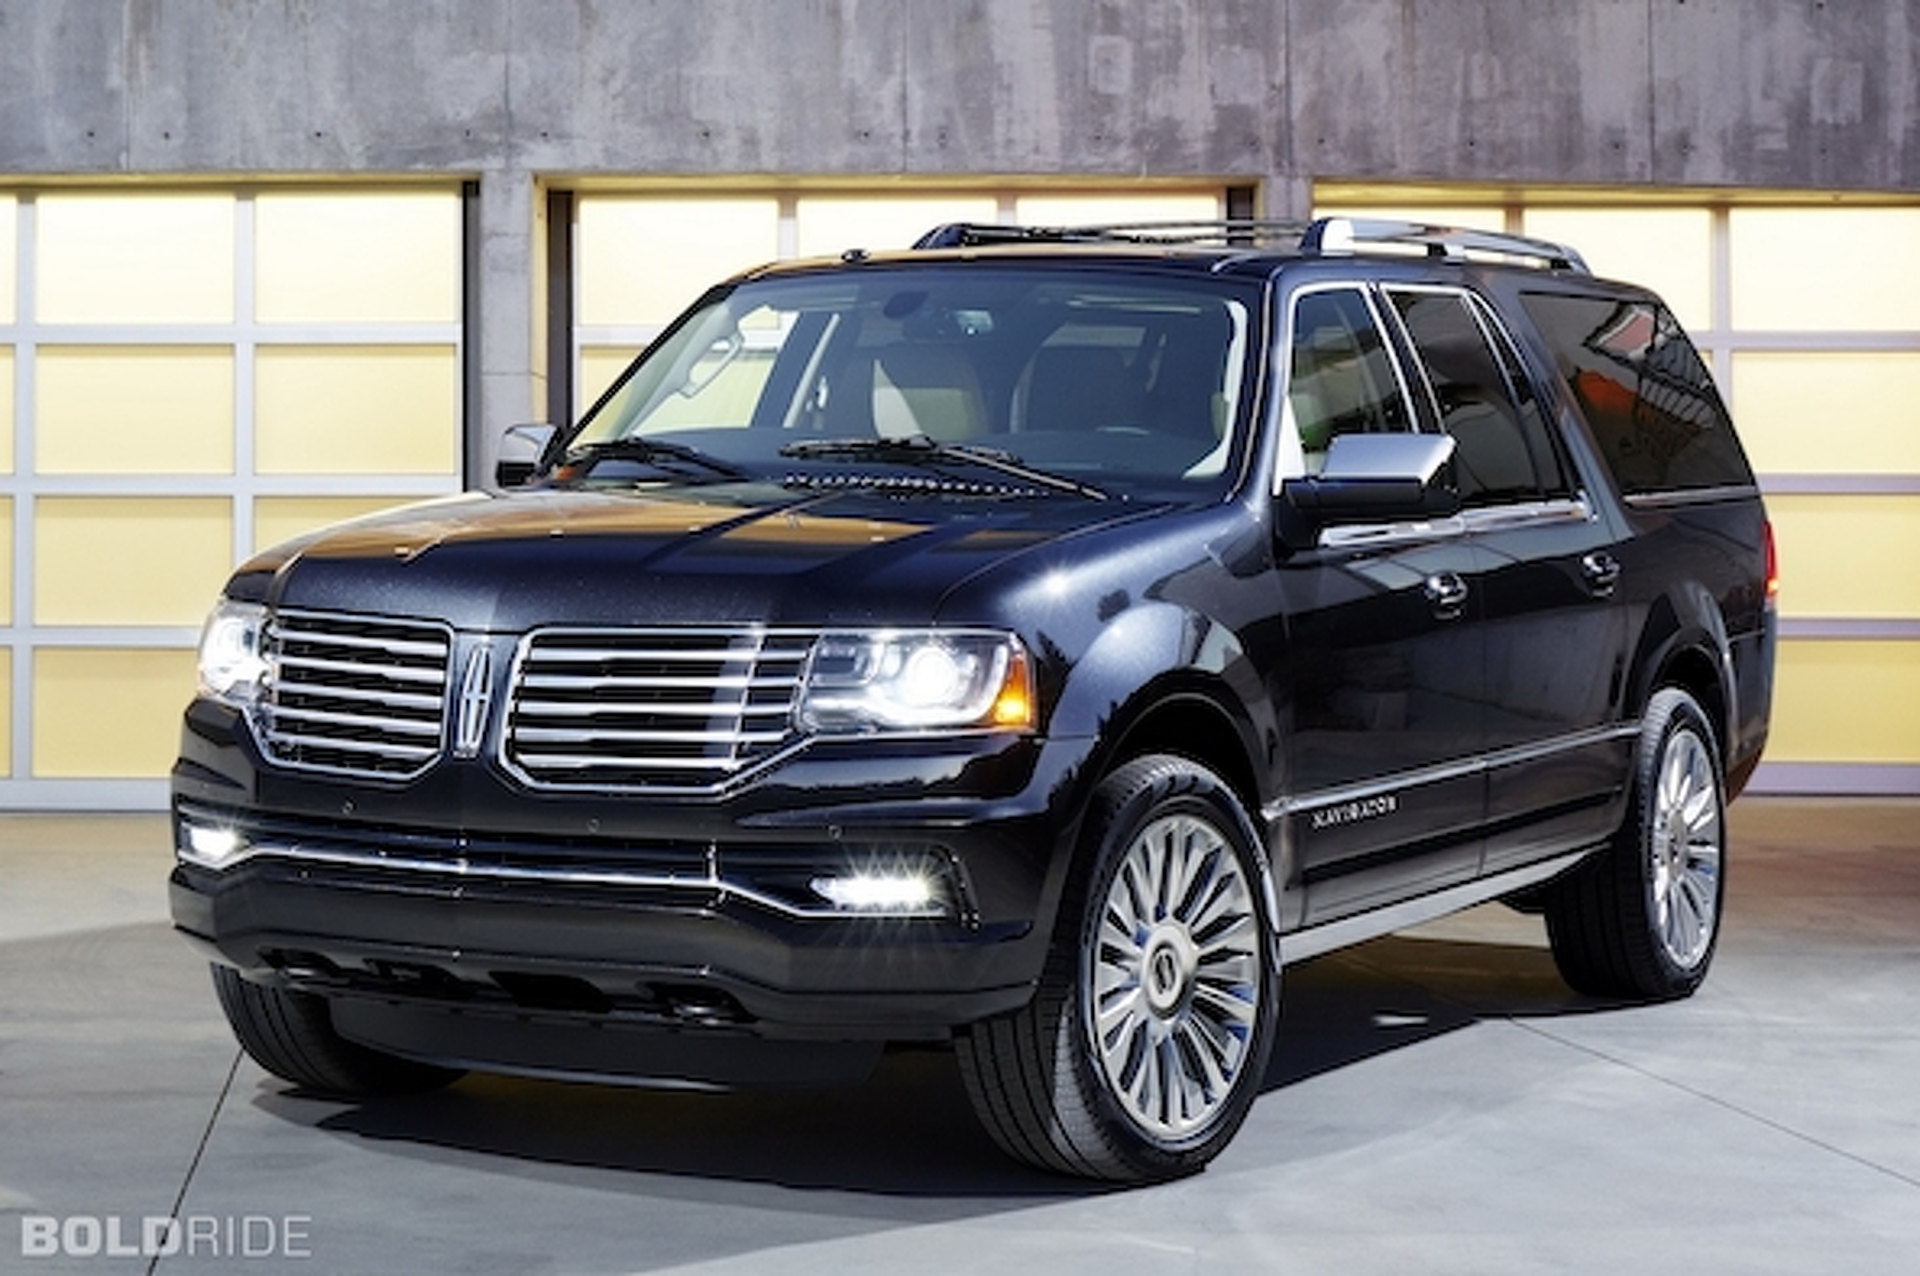 The Better Deal Lincoln Navigator Or Cadillac Escalade Or Chevy - Chevrolet lincoln